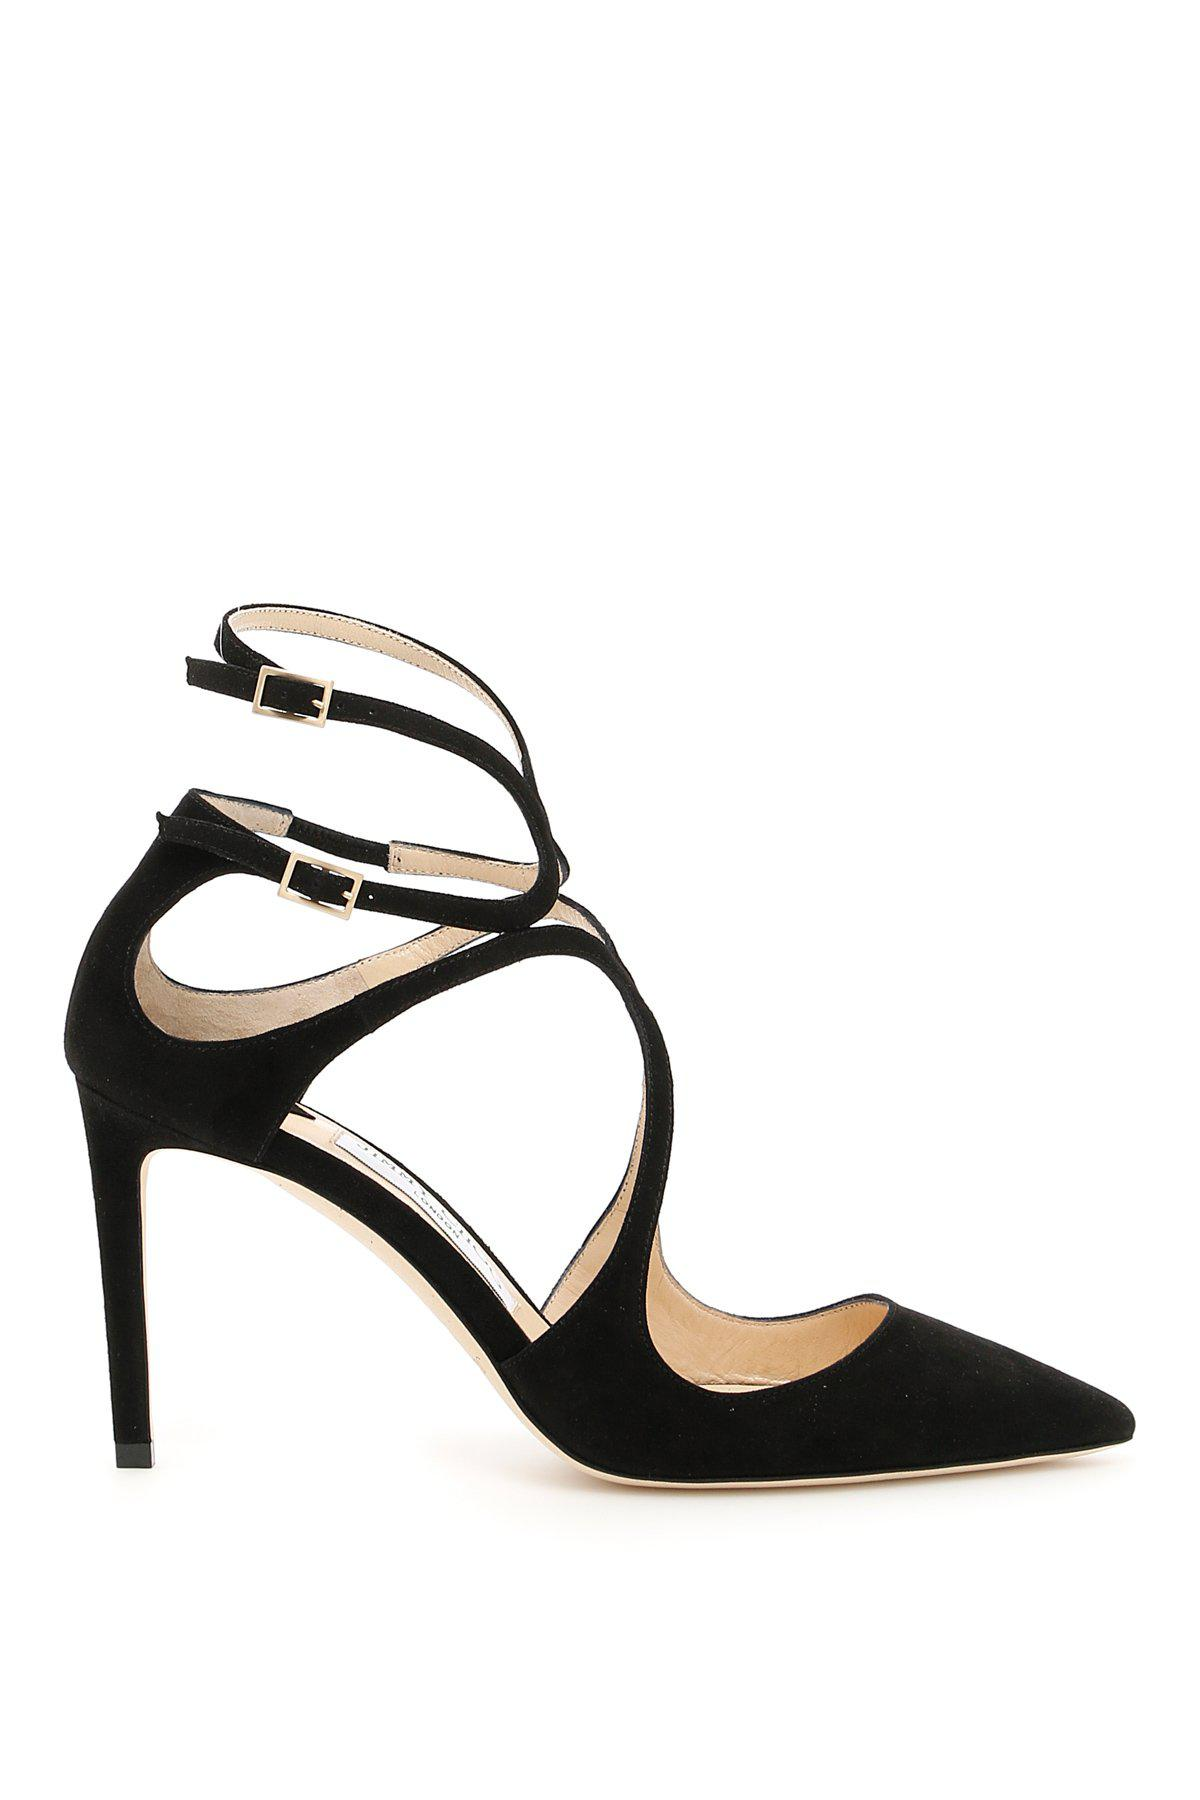 83f752f2f981 Jimmy Choo Lancer 85 Suede Pumps in Black - Lyst